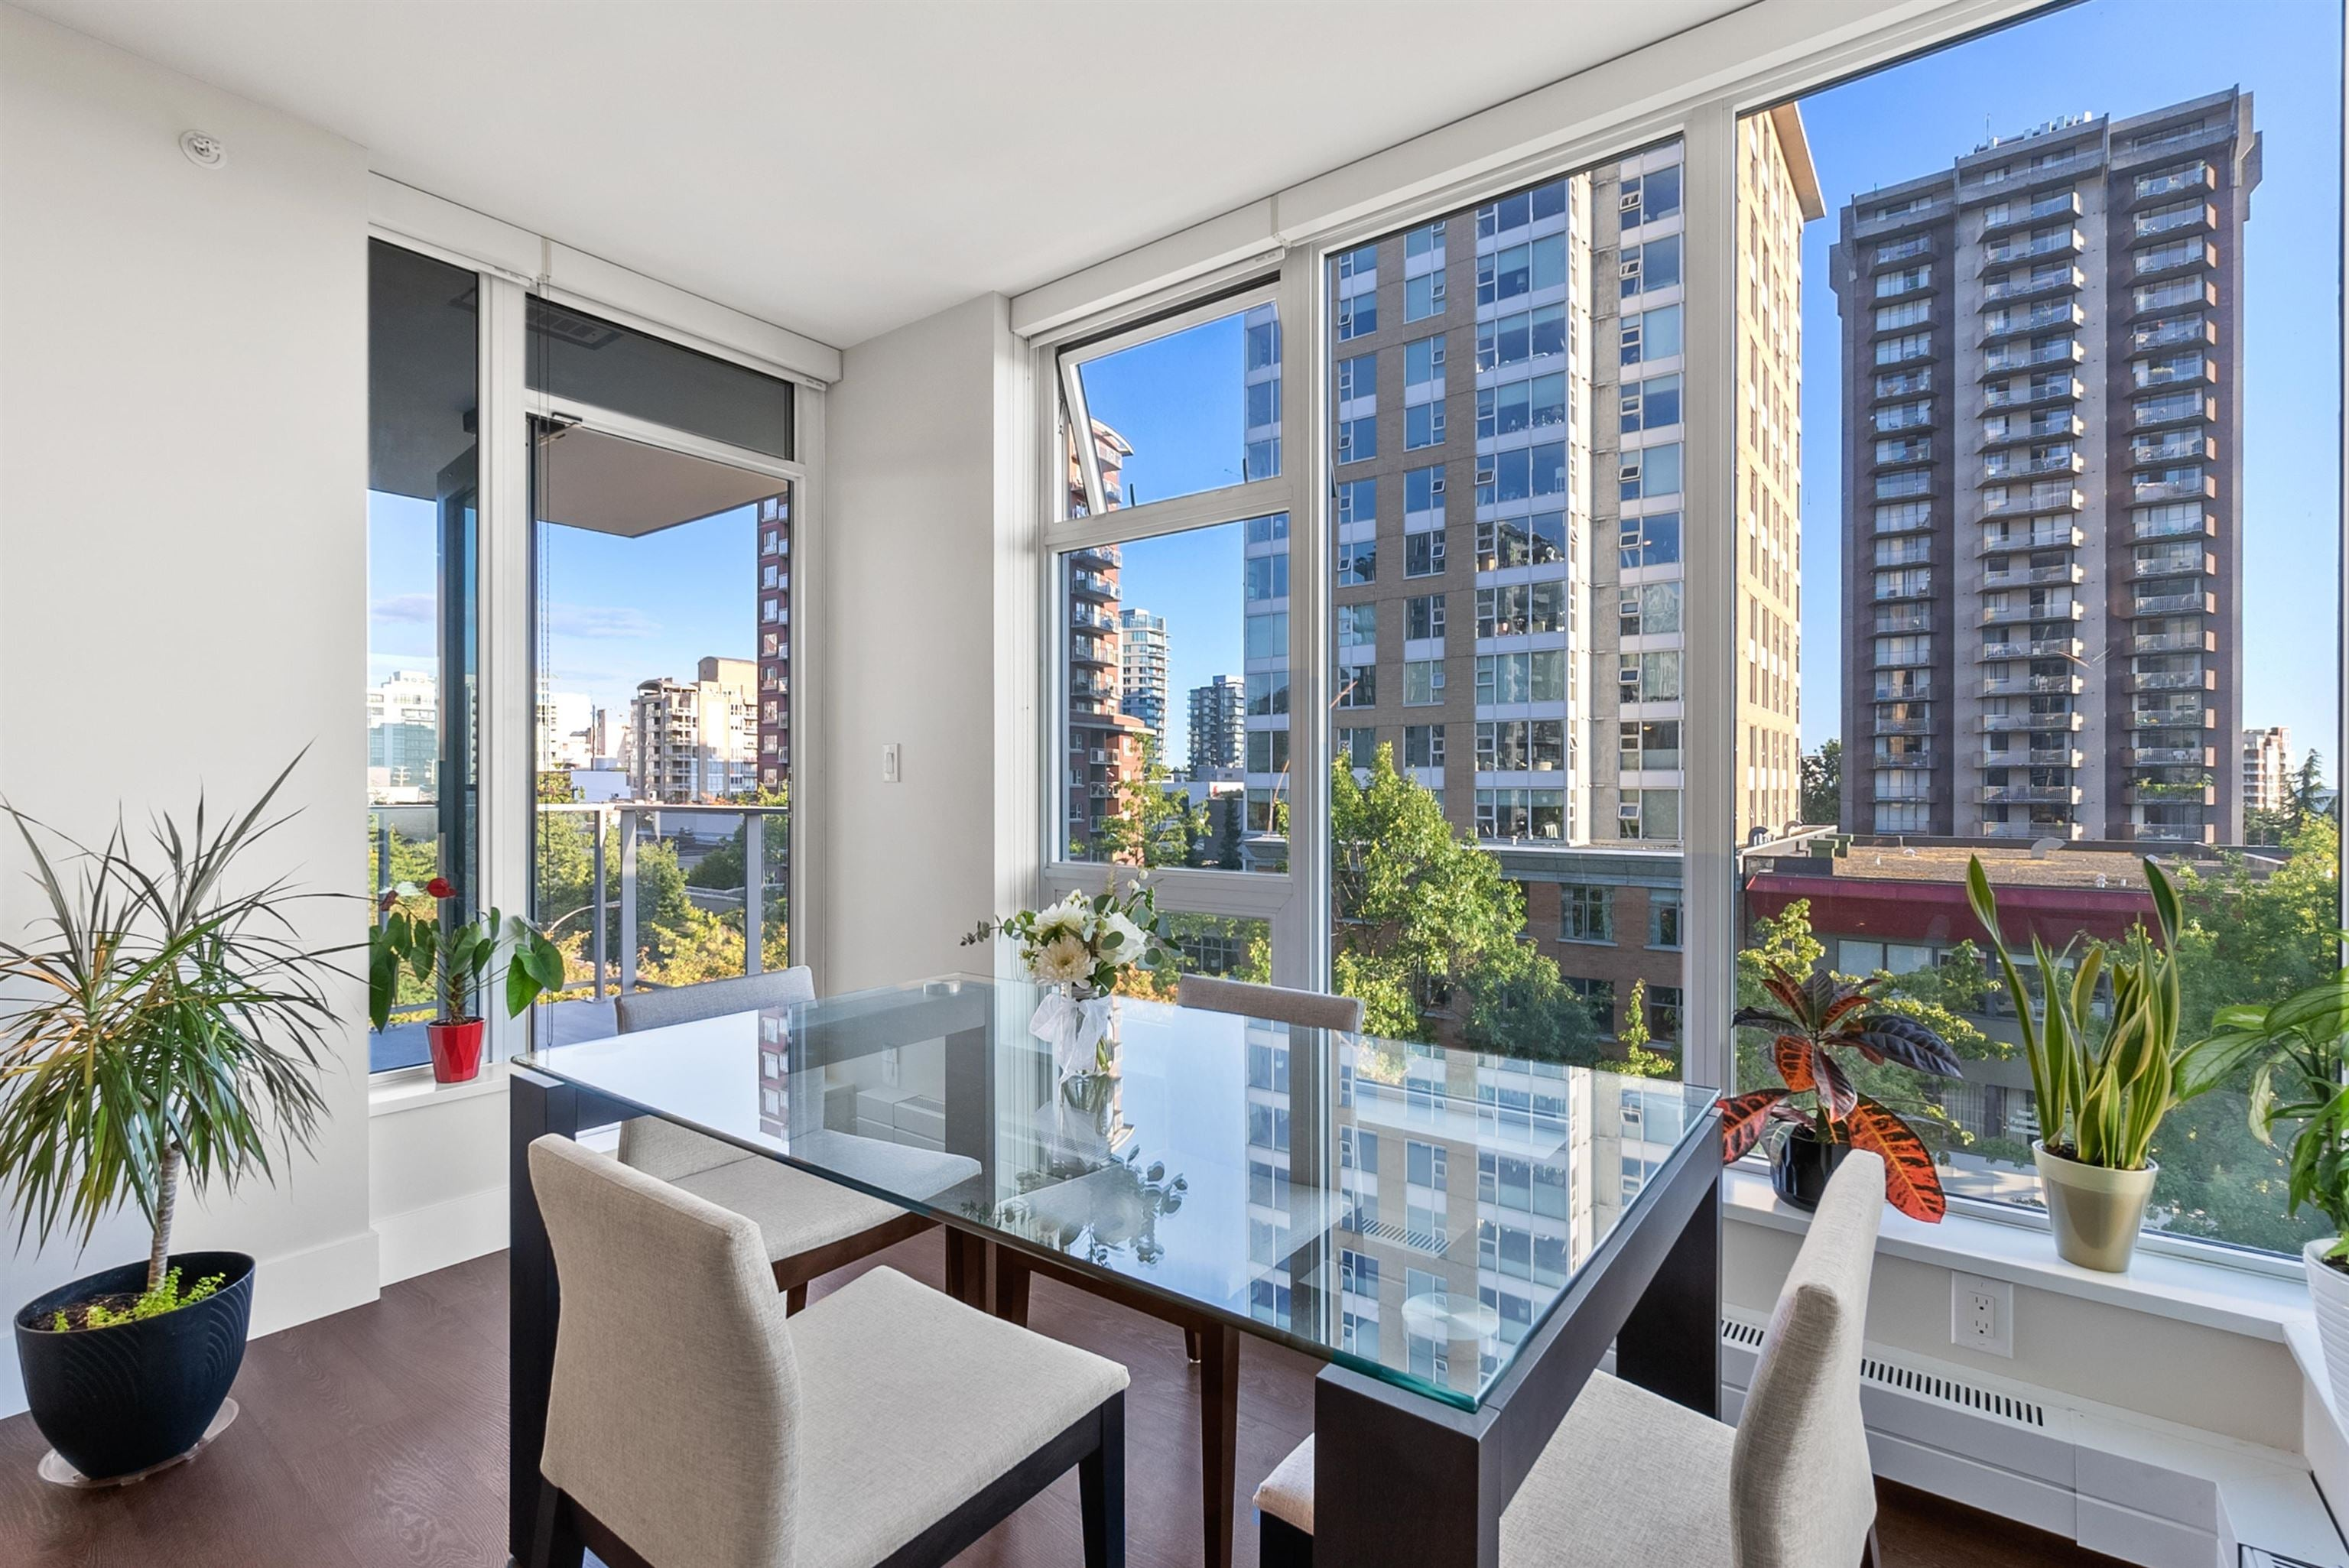 503 150 W 15TH STREET - Central Lonsdale Apartment/Condo for sale, 2 Bedrooms (R2624732) - #4